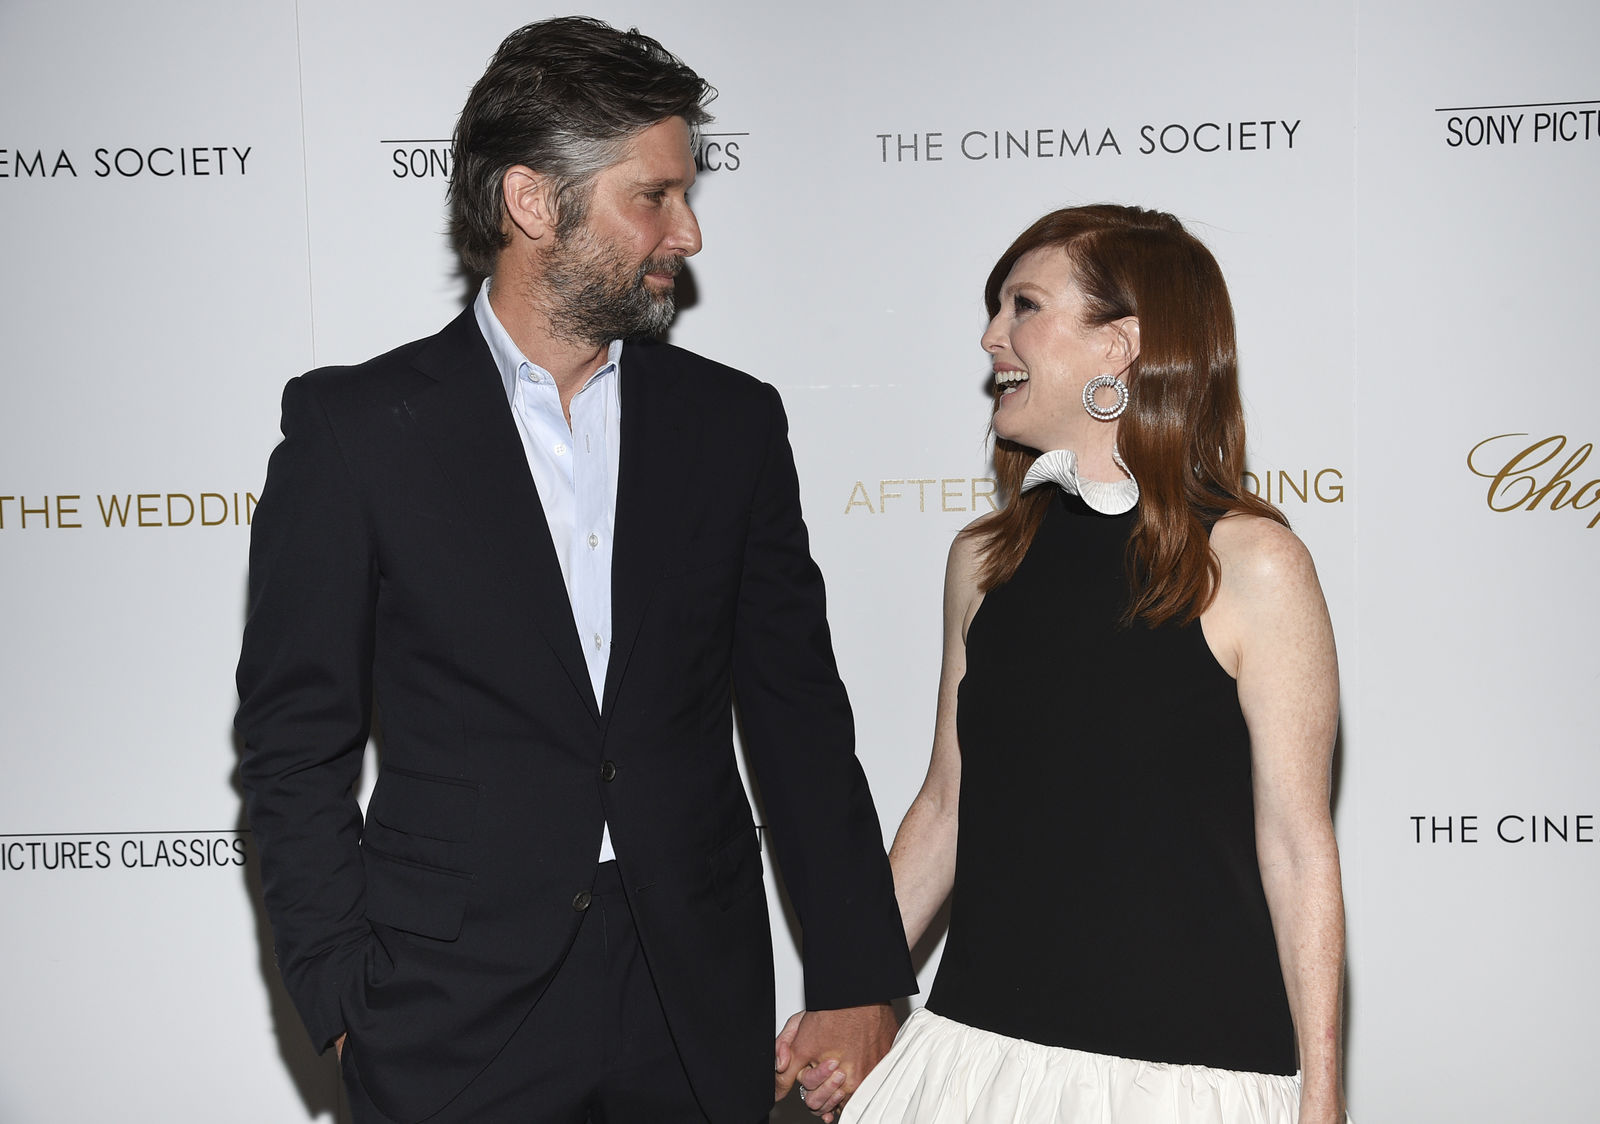 "FILE - In this Tuesday, Aug. 6, 2019 file photo, director Bart Freundlich, left, and wife, actor Julianne Moore, attend a special screening of ""After the Wedding"" in New York. (Photo by Evan Agostini/Invision/AP)"